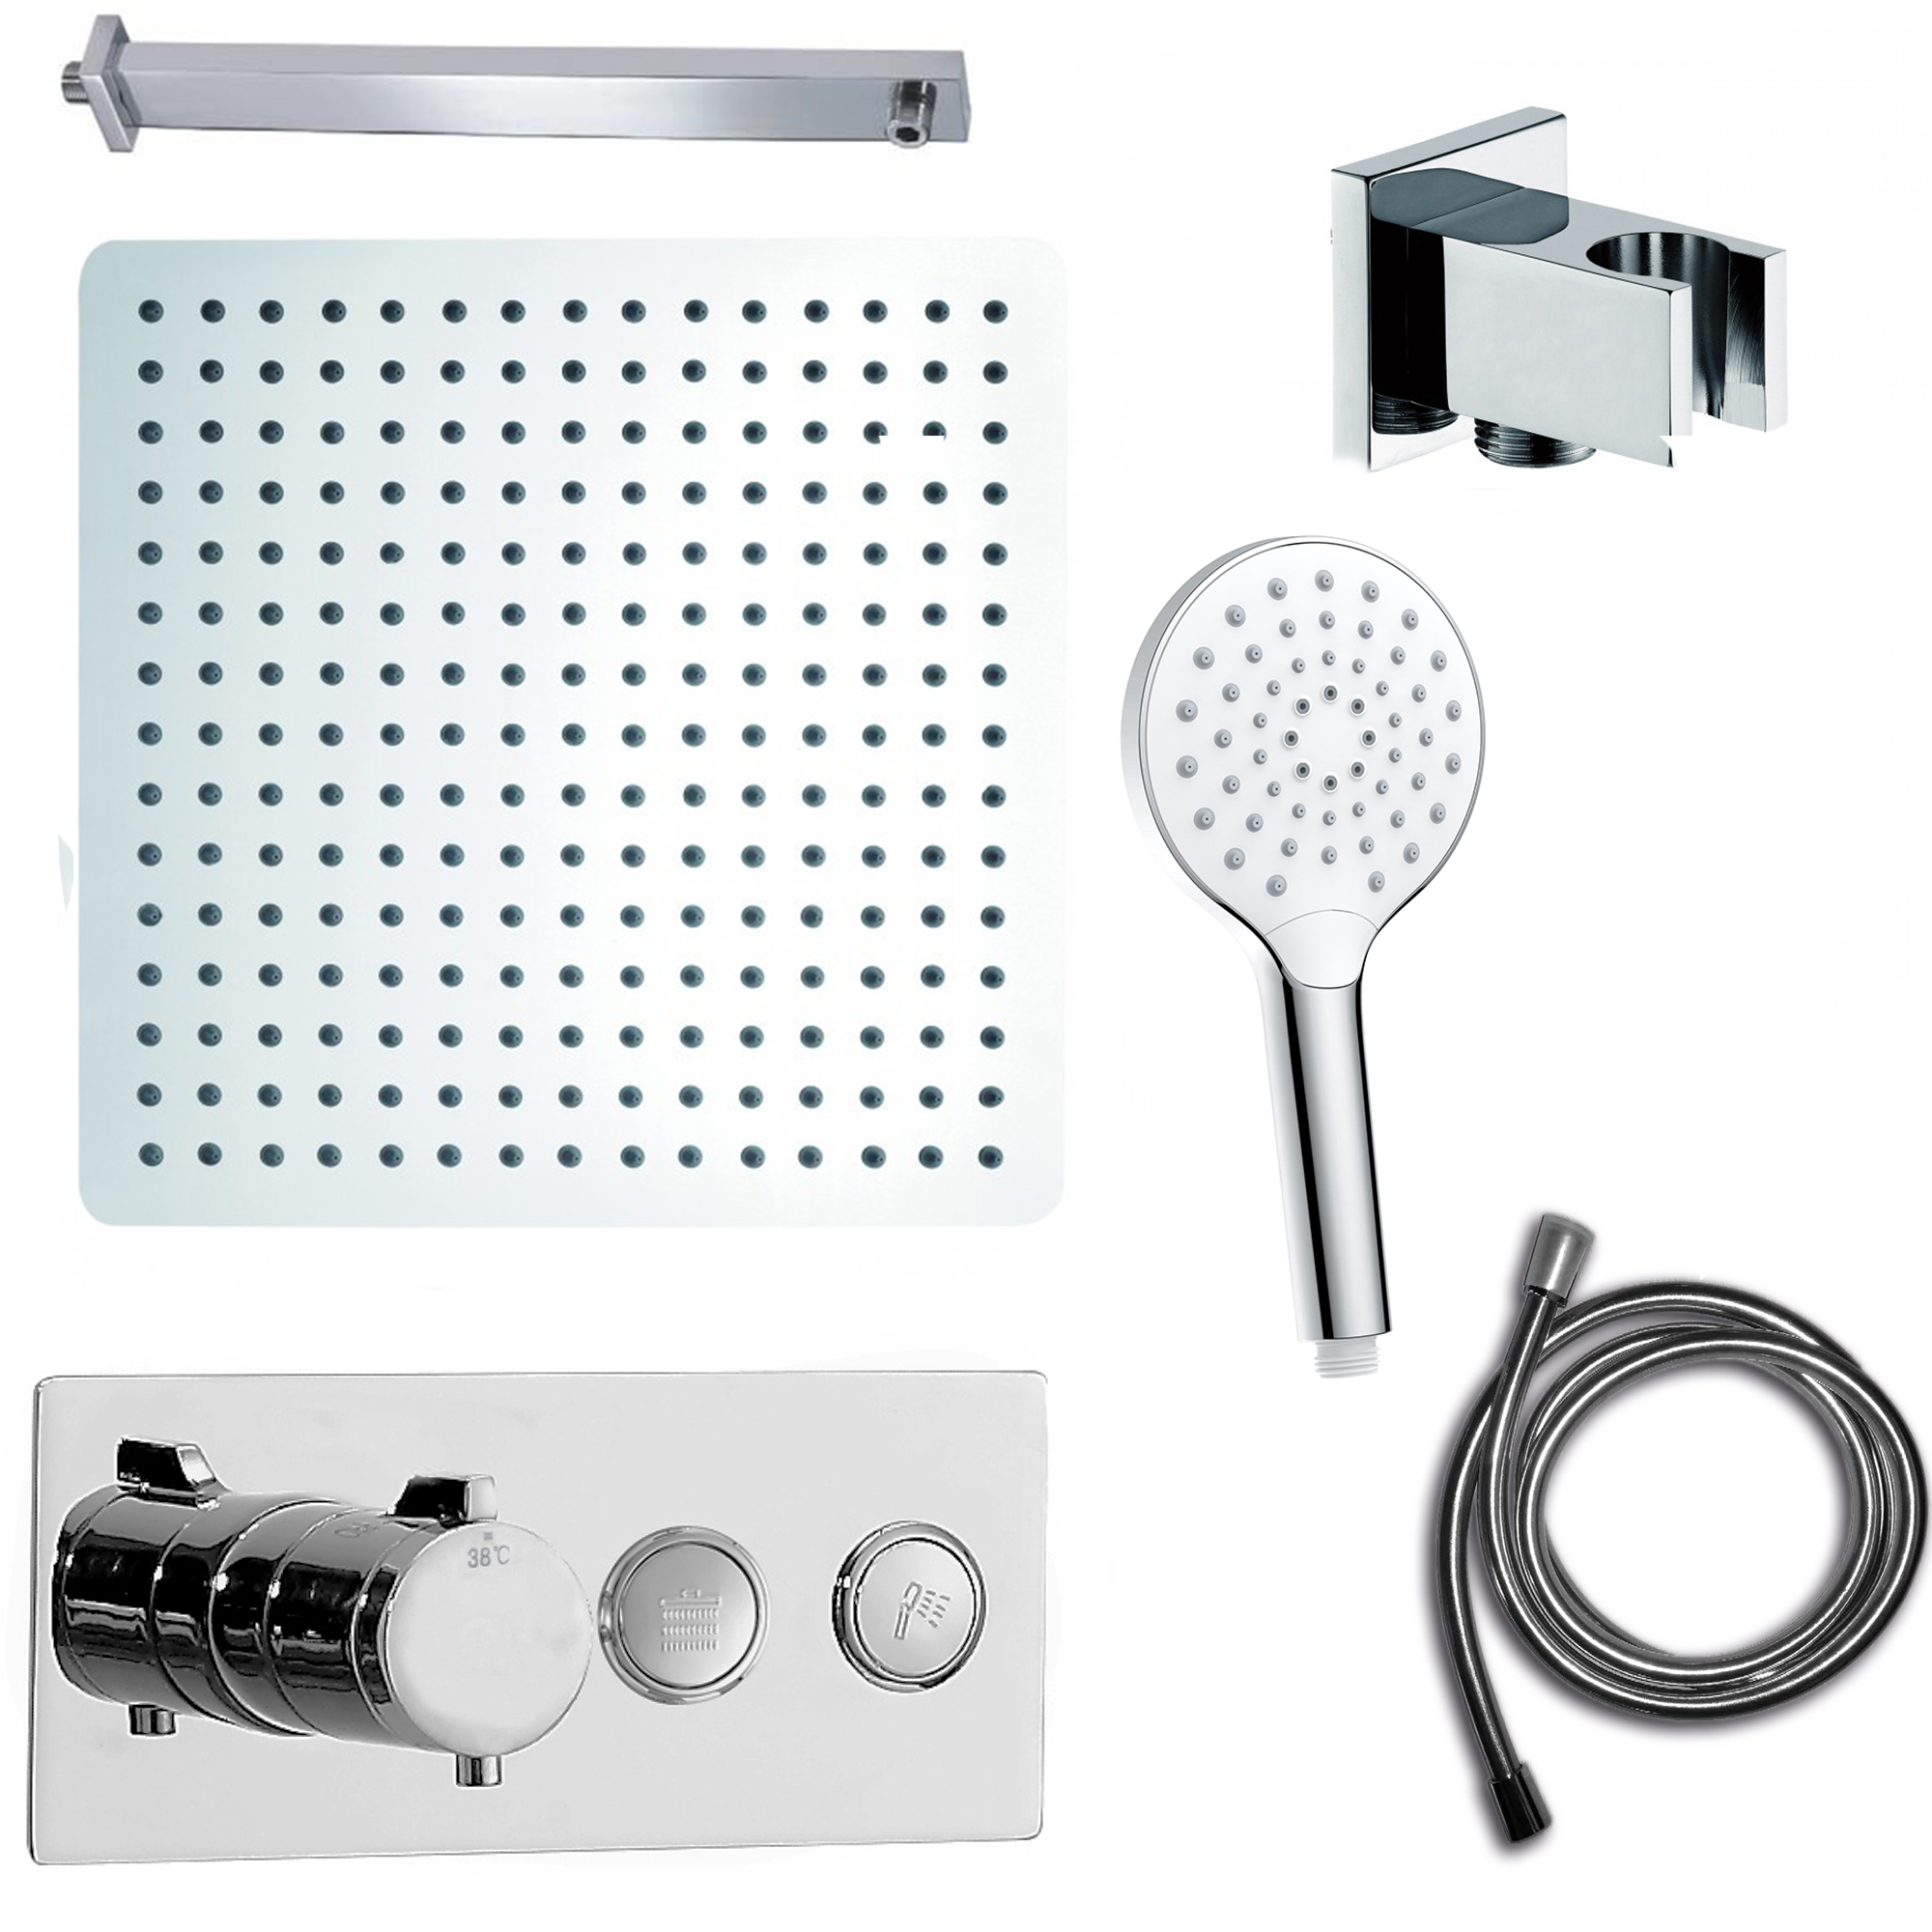 Shower Set with Concealed Thermostatic Shower Mixer Valve NT7176 - Shower Head and Hand Shower